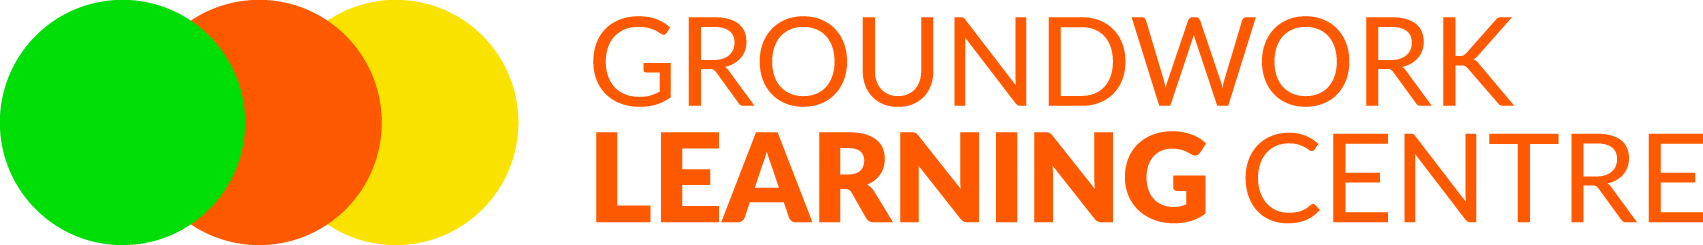 Groundwork Learning Centre